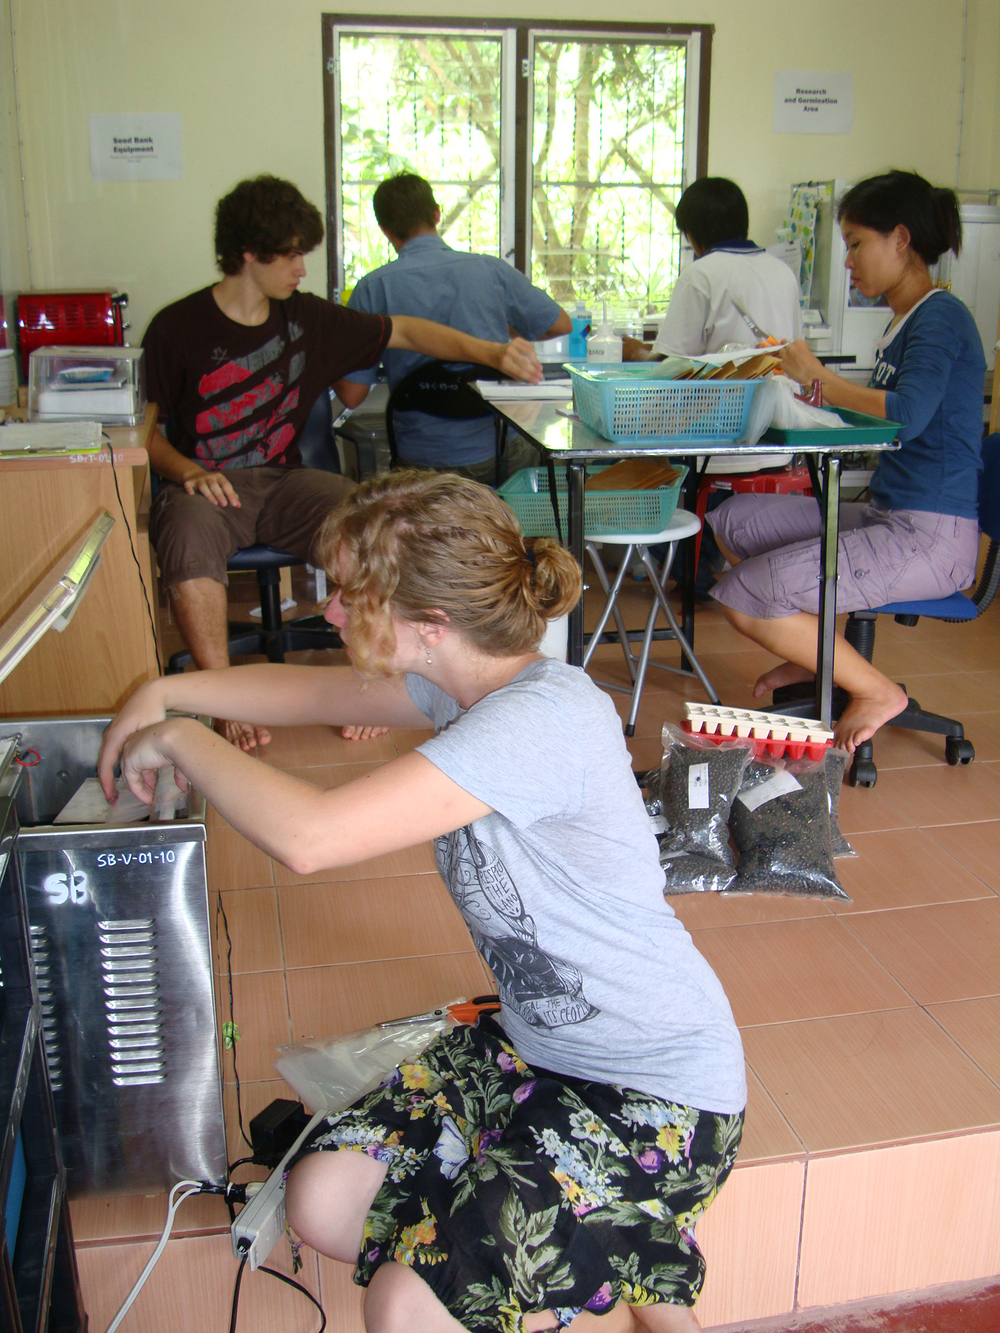 Interns and Seed Bank staff at work_web.jpg